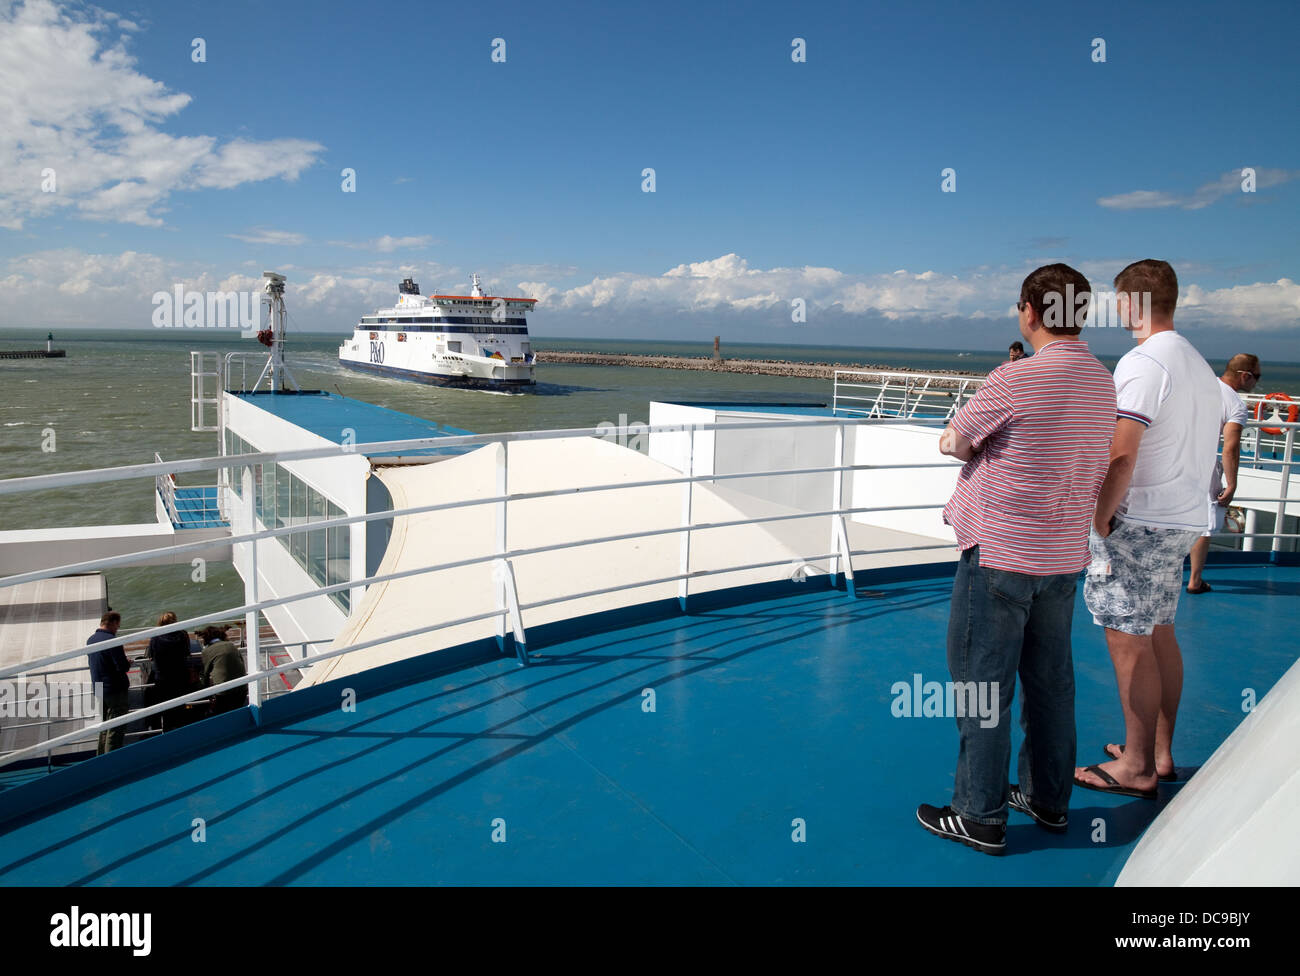 Passengers aboard the MyFerryLink cross channel ferry 'Rodin' as it leaves Calais for Dover - Stock Image